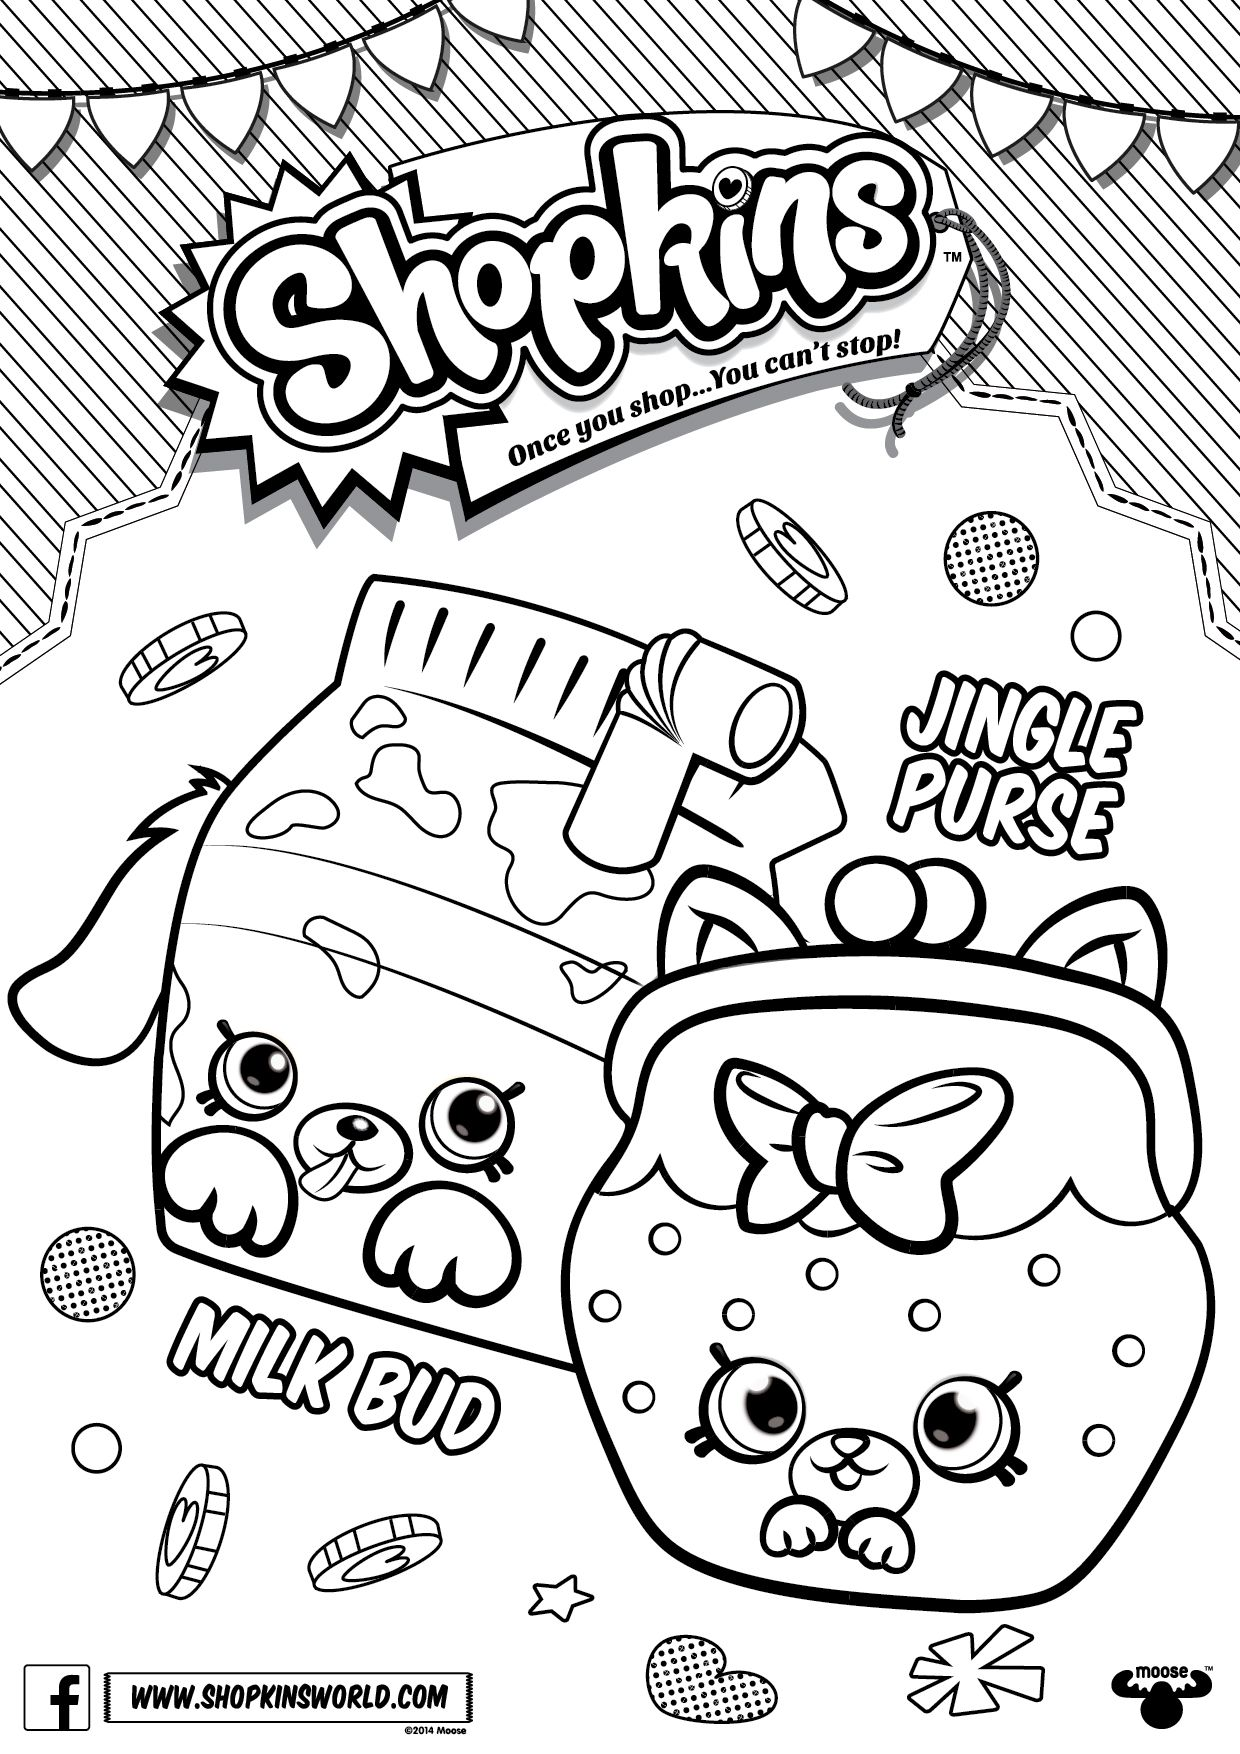 Shopkins color sheets - Shopkins Coloring Pages Season 4 Petkins Jingle Purse Milk Bud Made By A Princess